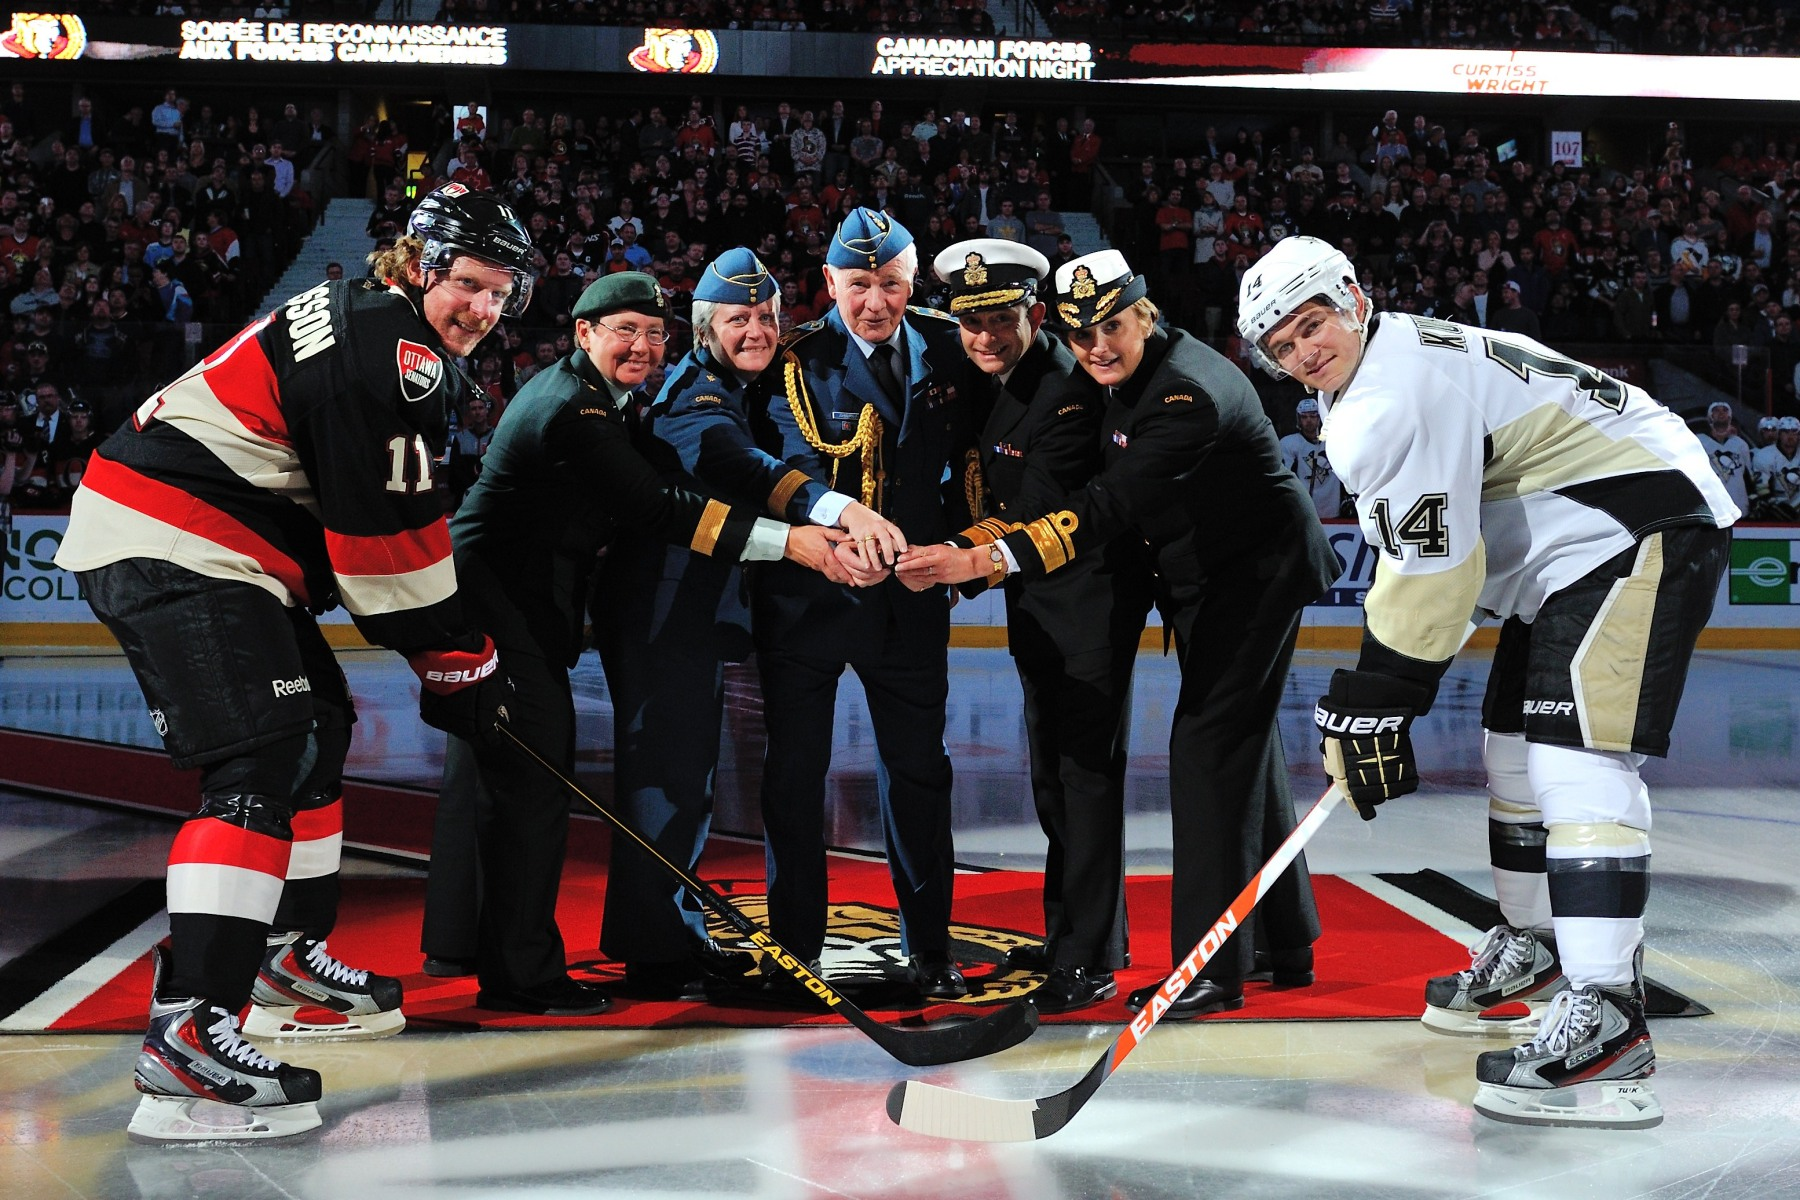 On this occasion, His Excellency, as Commander-in-Chief, participated in the ceremonial puck drop at the beginning of the Ottawa Senators' game against the Pittsburgh Penguins. 